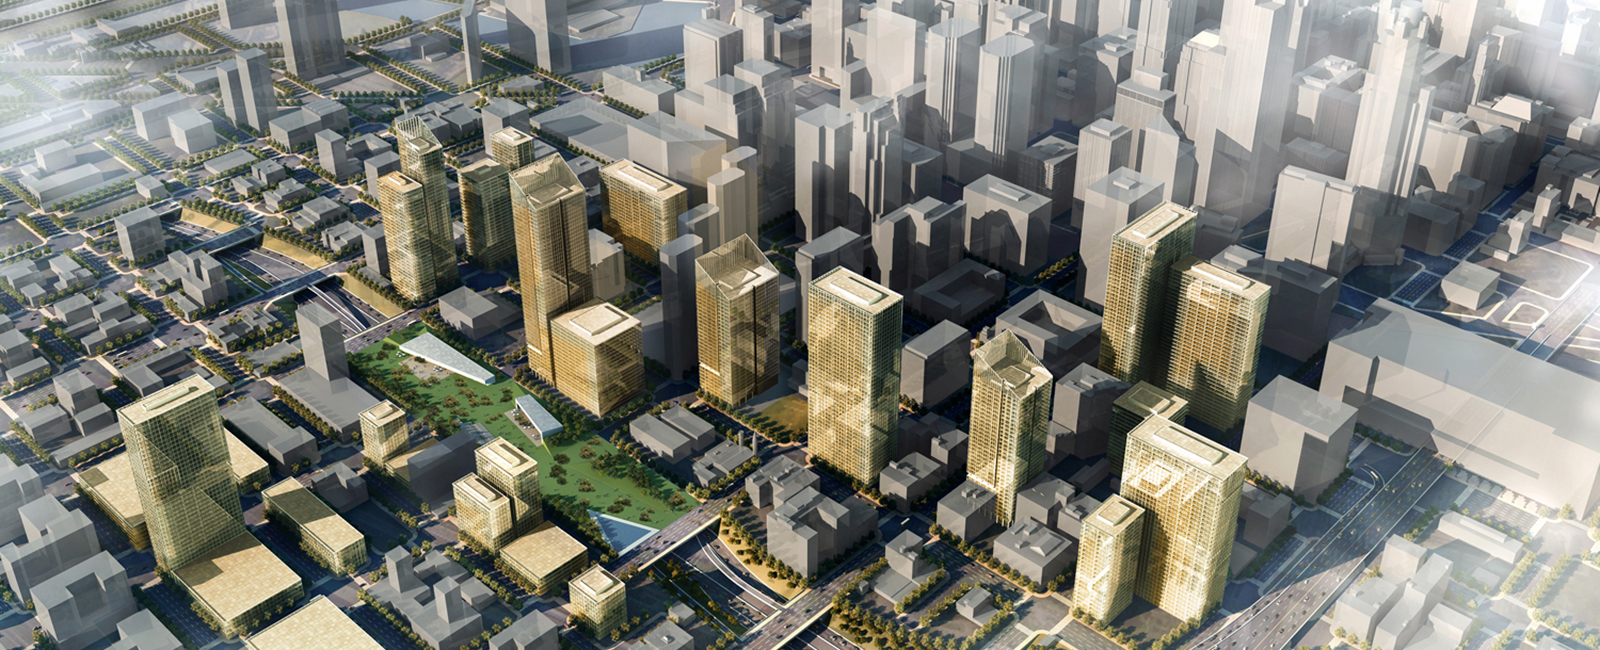 A rendering of a potential landscaped cap over the Kennedy Expressway.